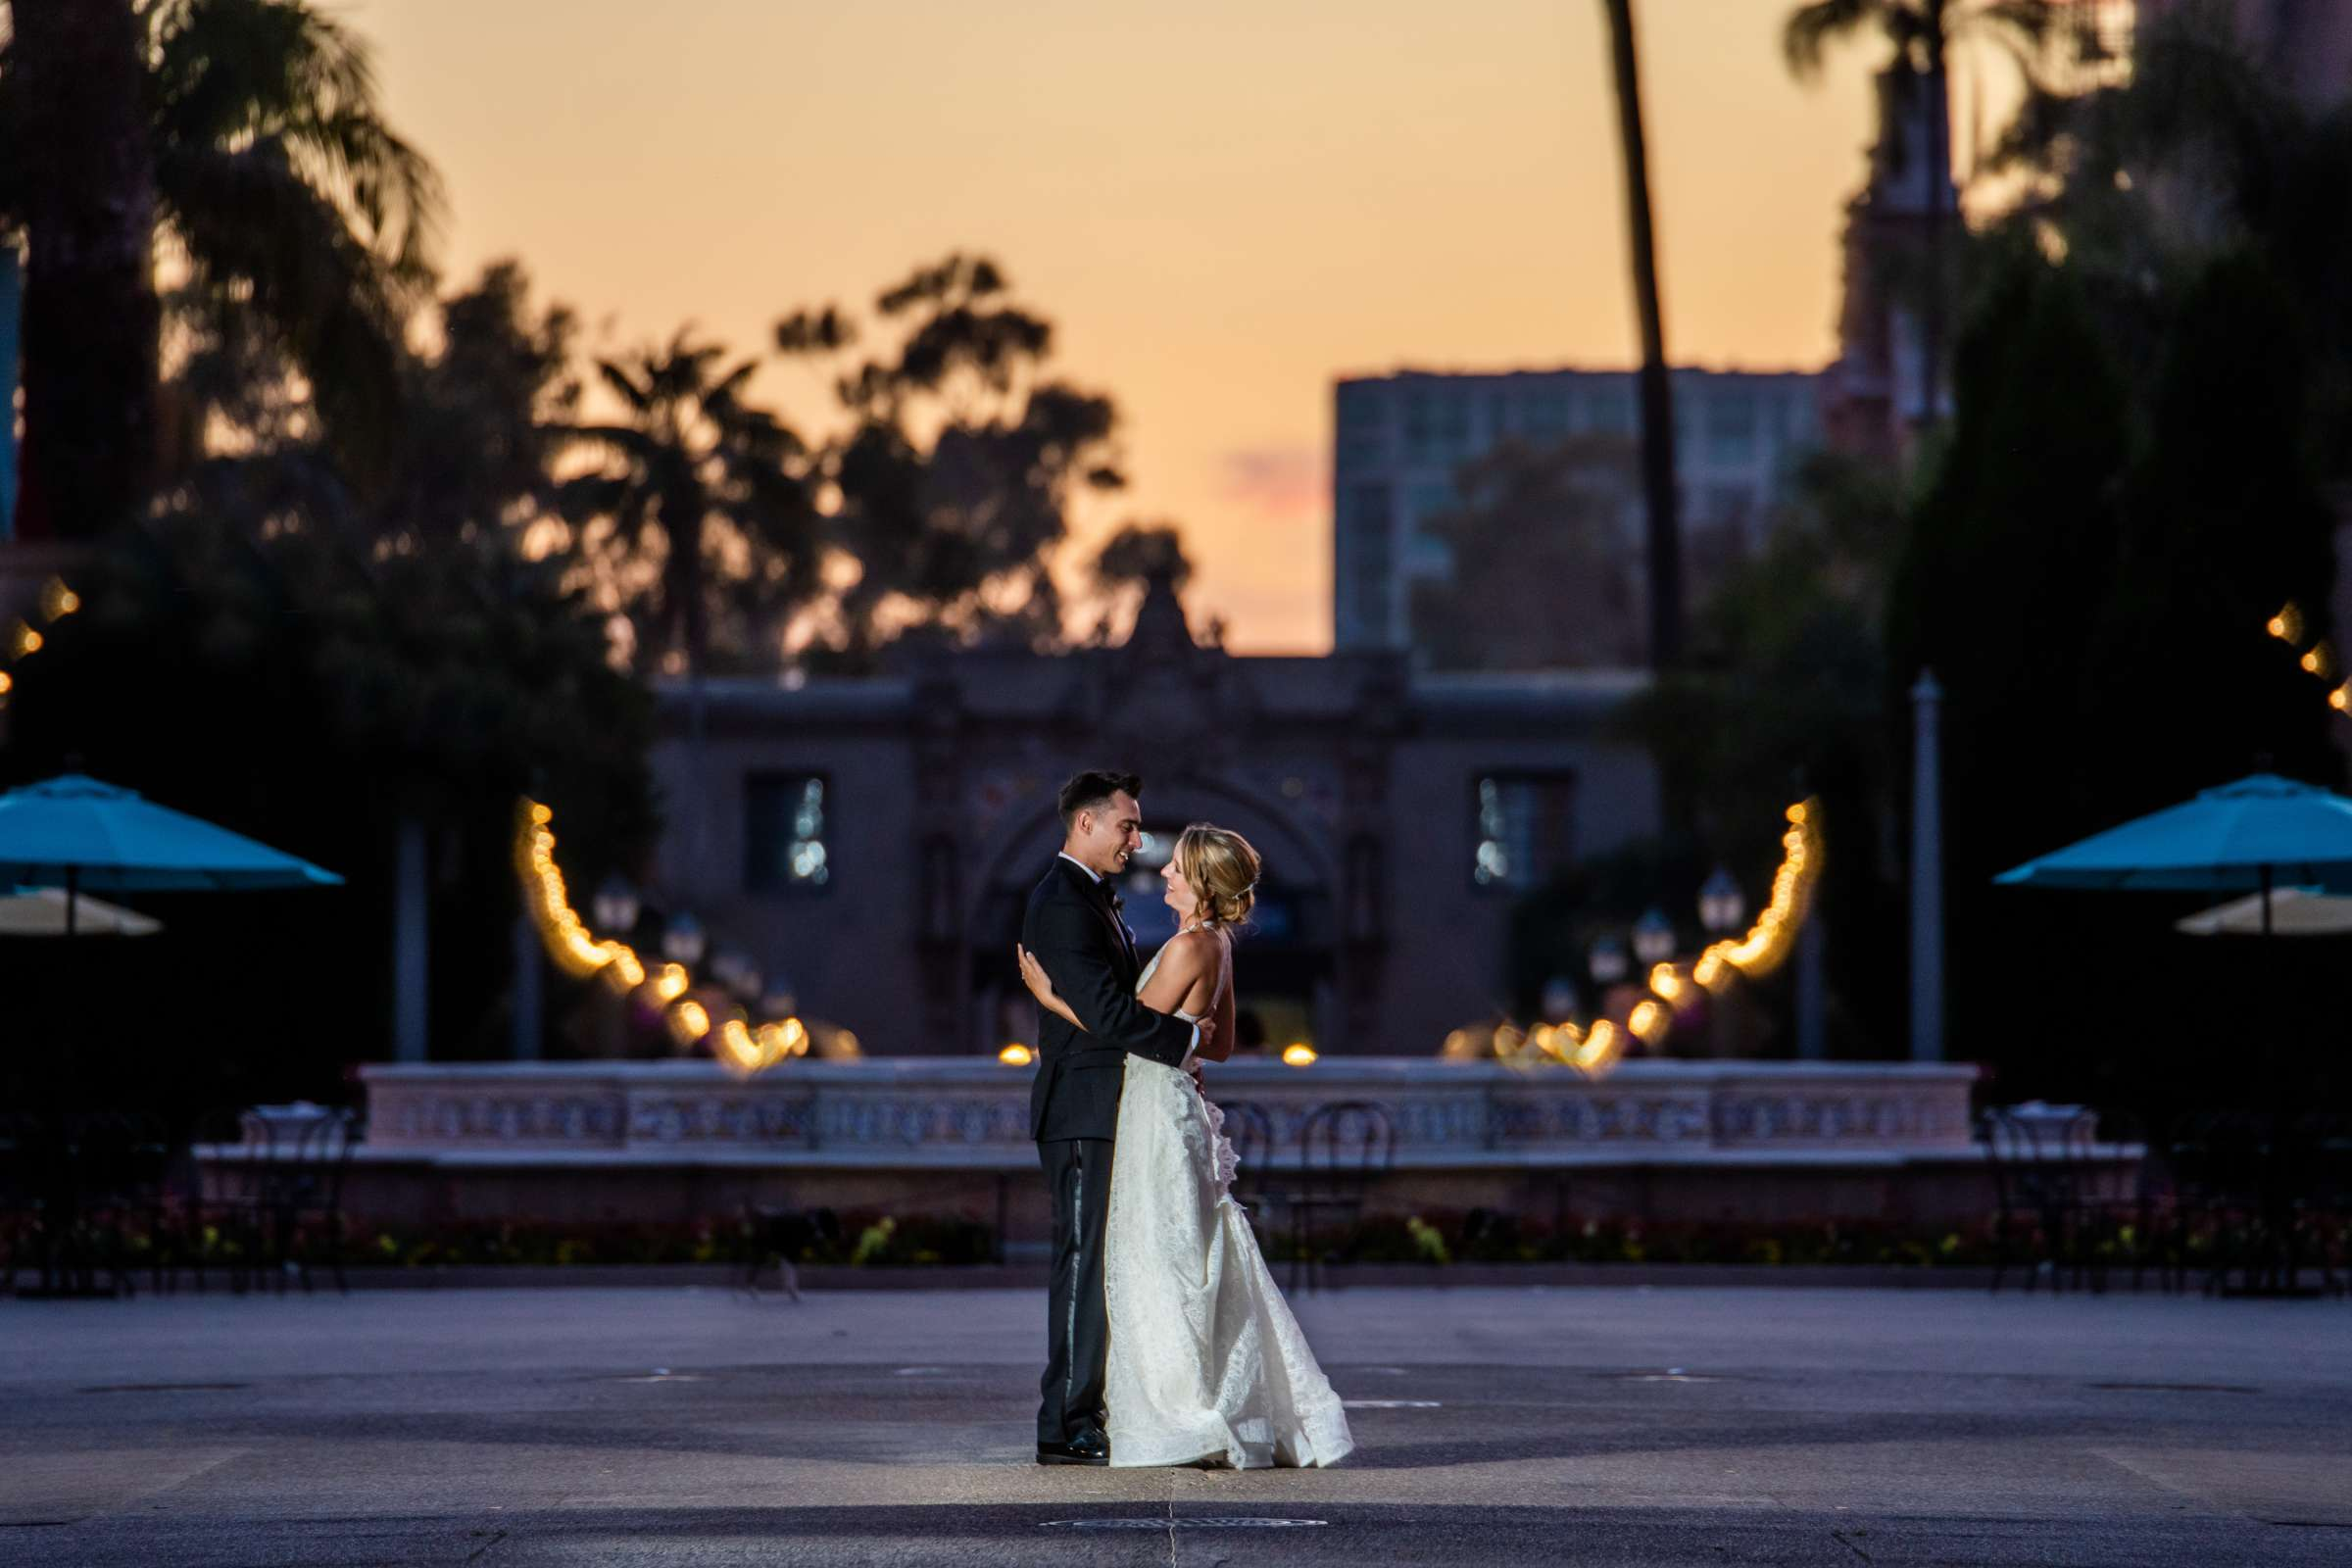 The Prado Wedding coordinated by Bliss Events, Sara and Marvin Wedding Photo #559645 by True Photography